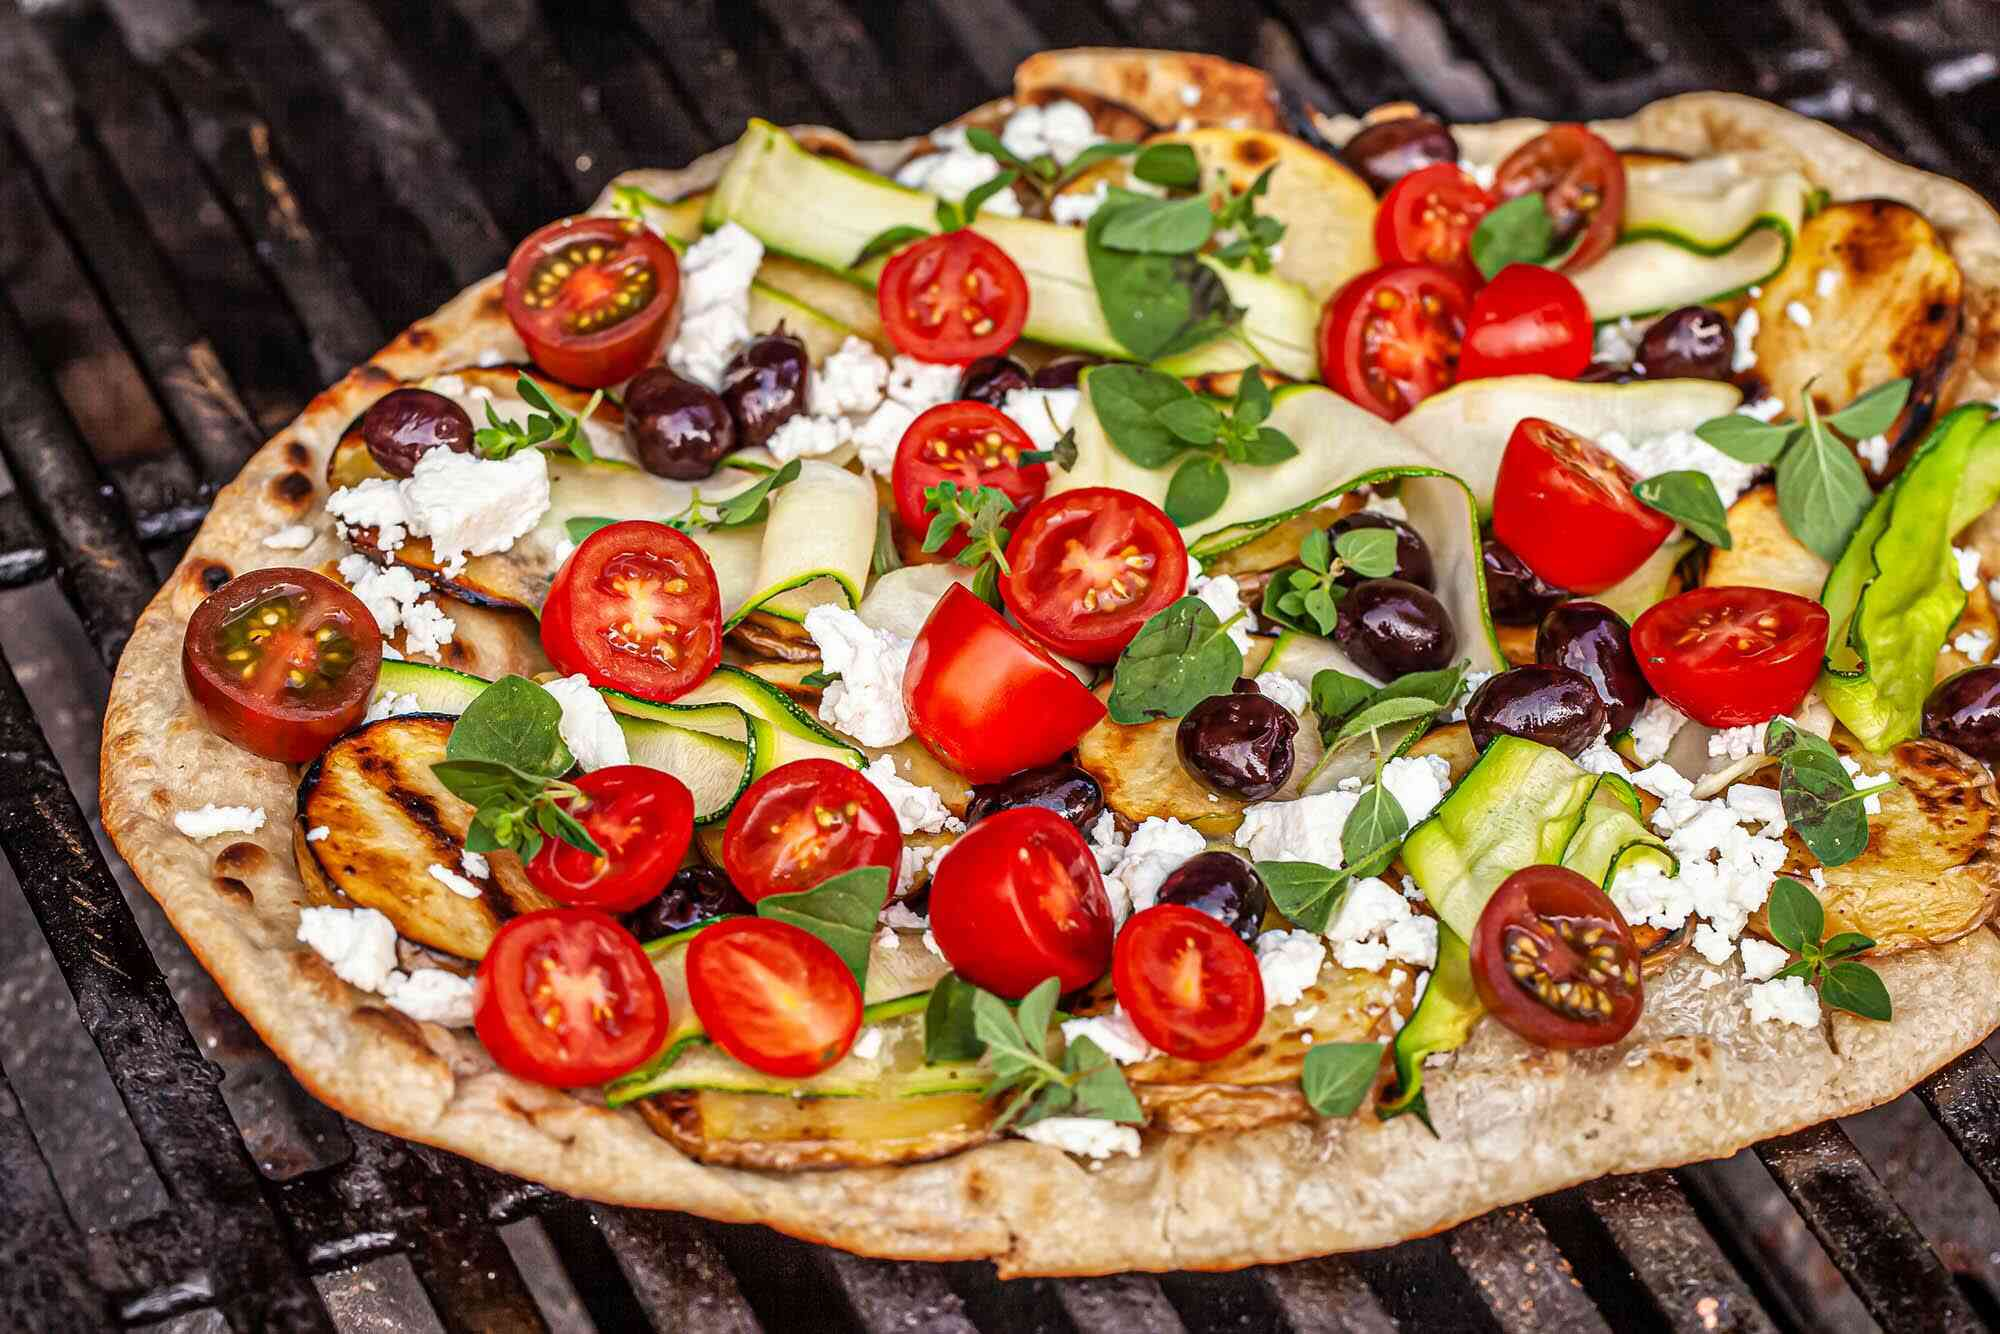 Grilled greek pizza on a grill and topped with halved tomatoes, black olives, cheese, zucchini ribbons and sliced potatoes.